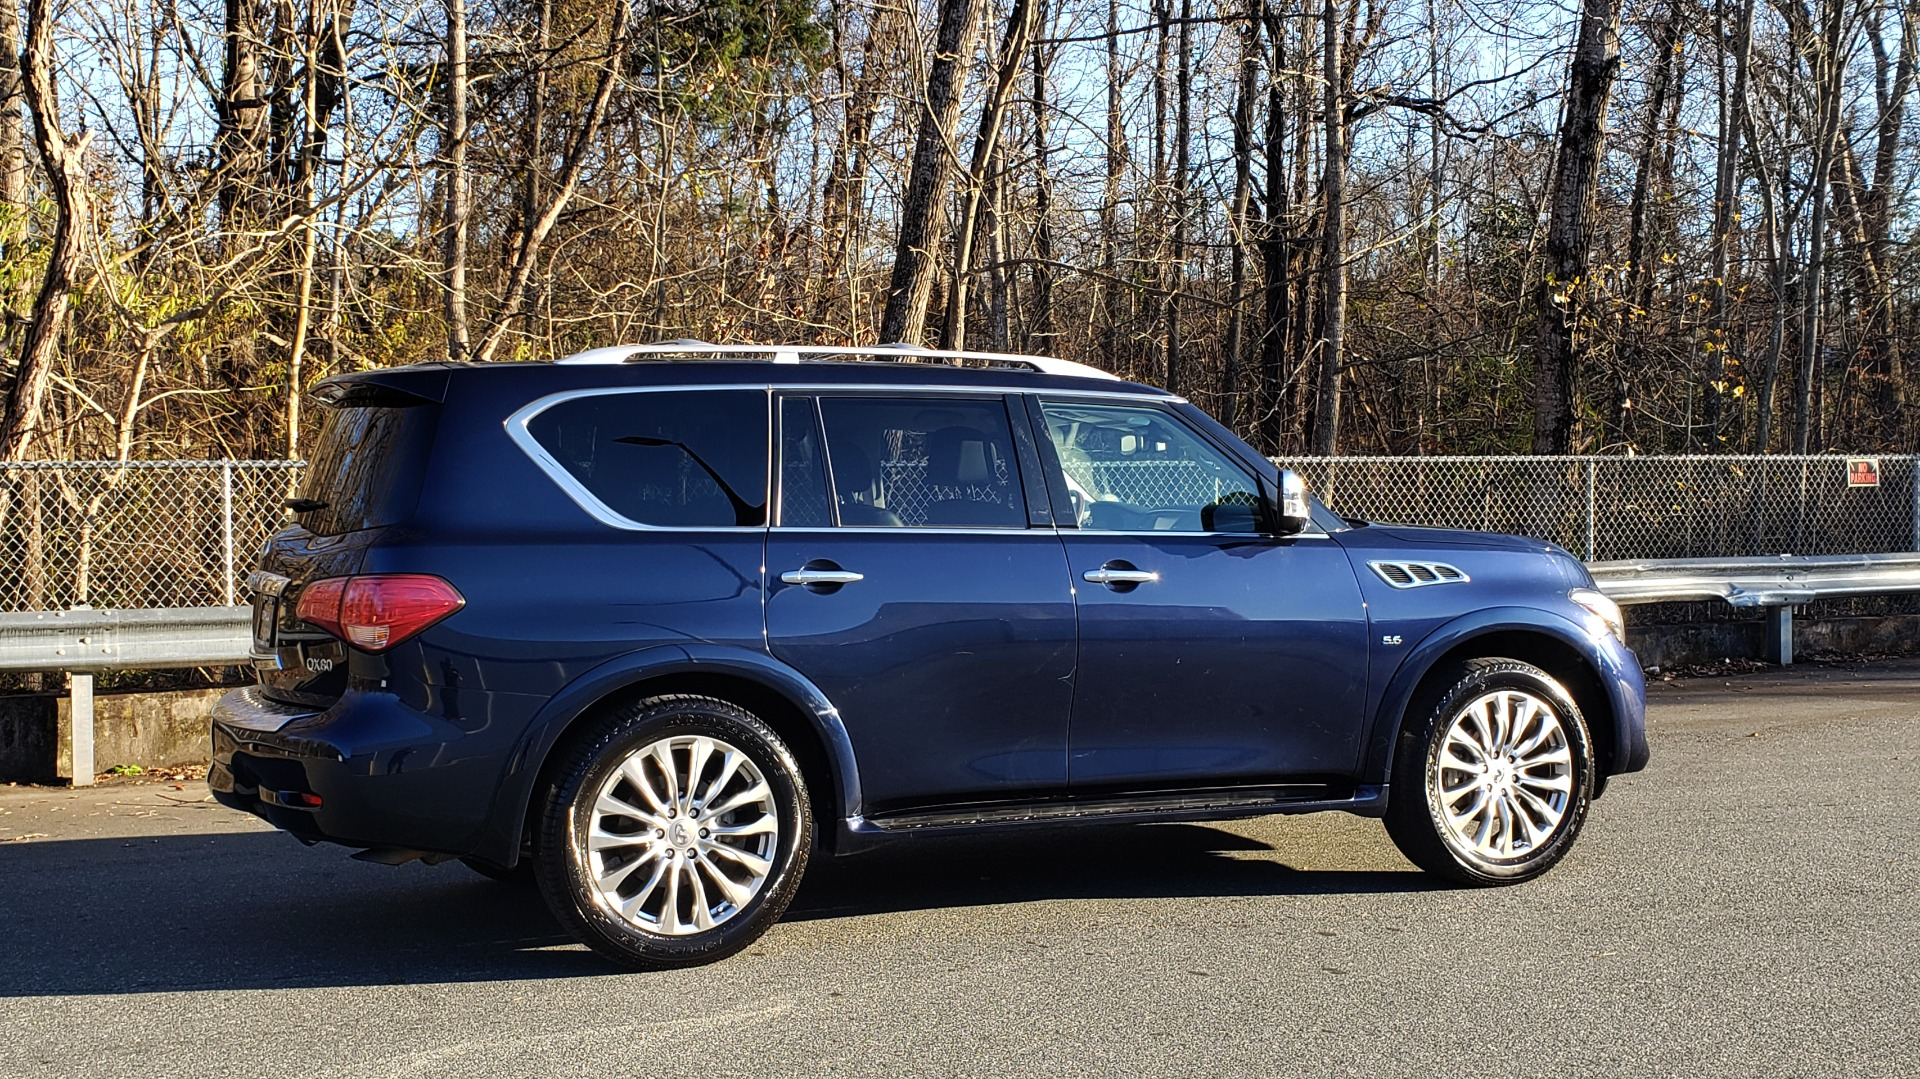 Used 2017 INFINITI QX80 4WD / NAV / SUNROOF / 3-ROW / THEATER PKG / REARVIEW for sale $46,495 at Formula Imports in Charlotte NC 28227 7